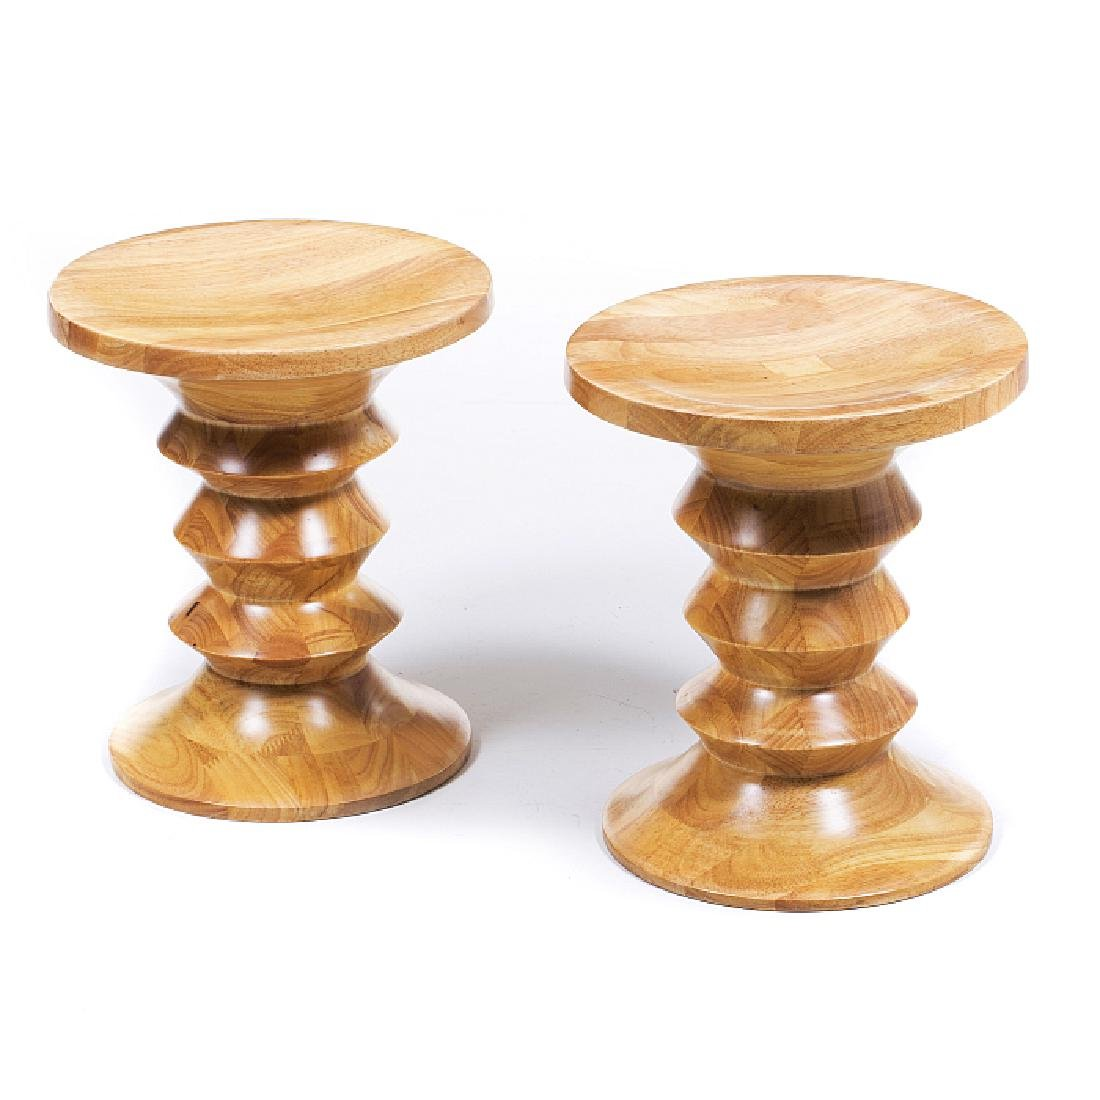 Pair of EAMES style stools